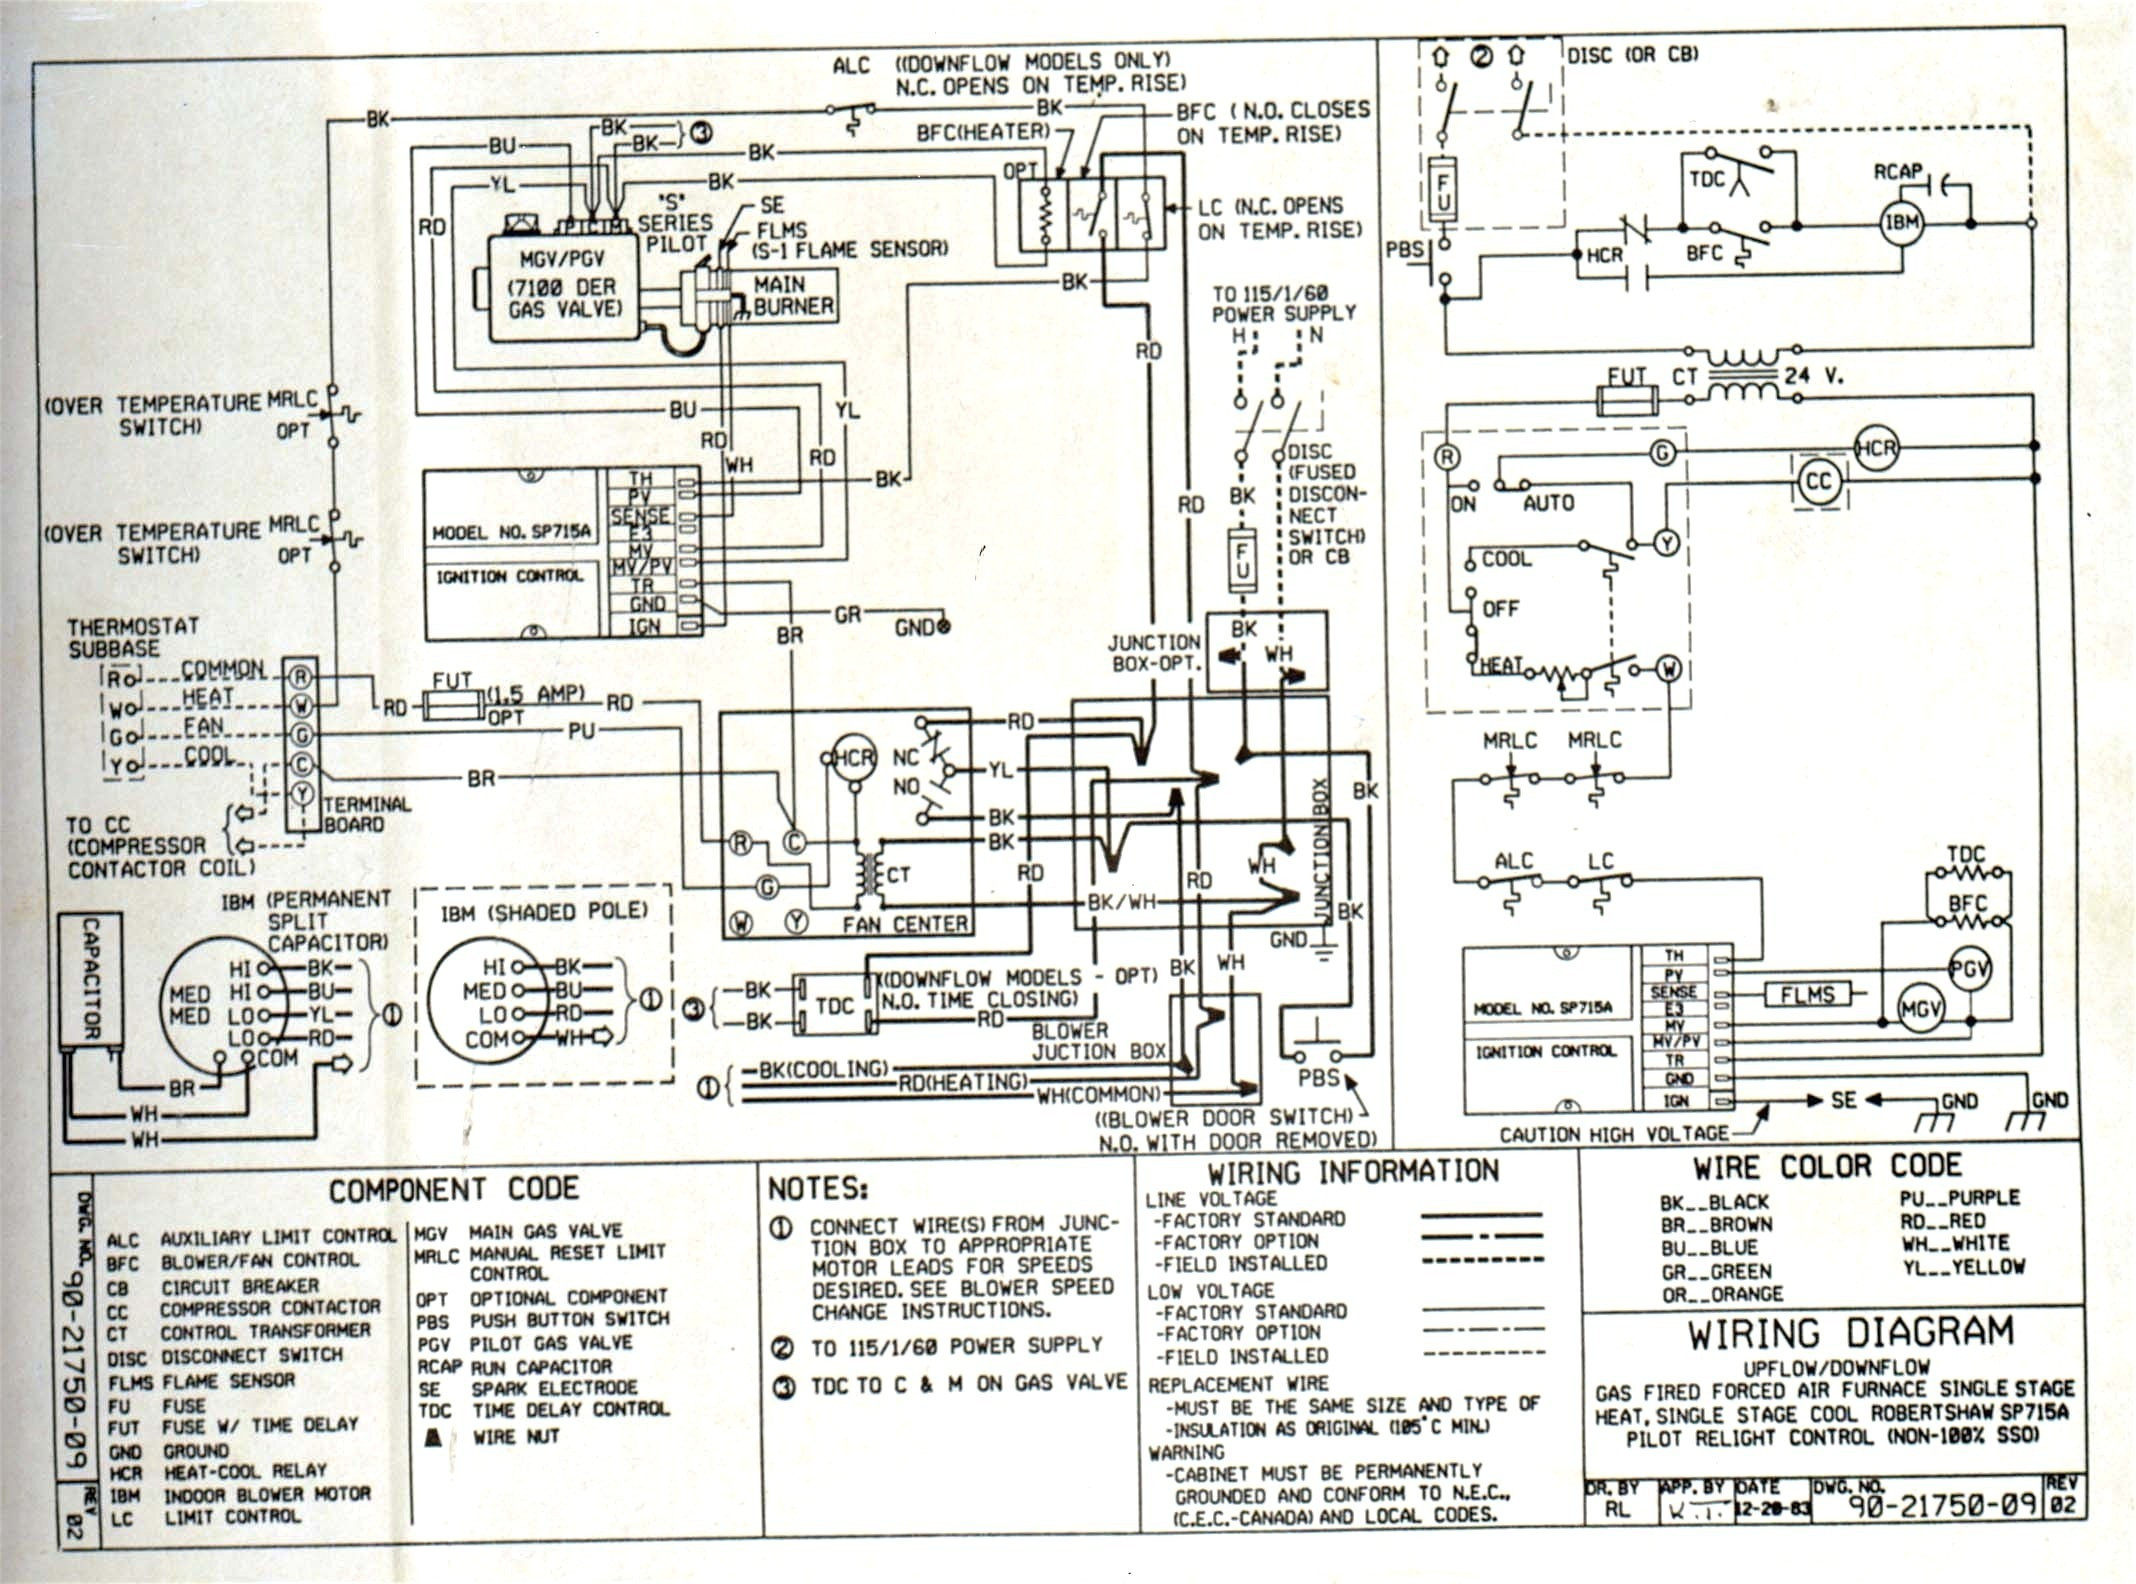 air conditioner wiring diagram Download-Wiring Diagram Air Conditioning pressor Fresh Wiring Diagram Ac Pressor New Mcquay Air Conditioner Wiring 12-h